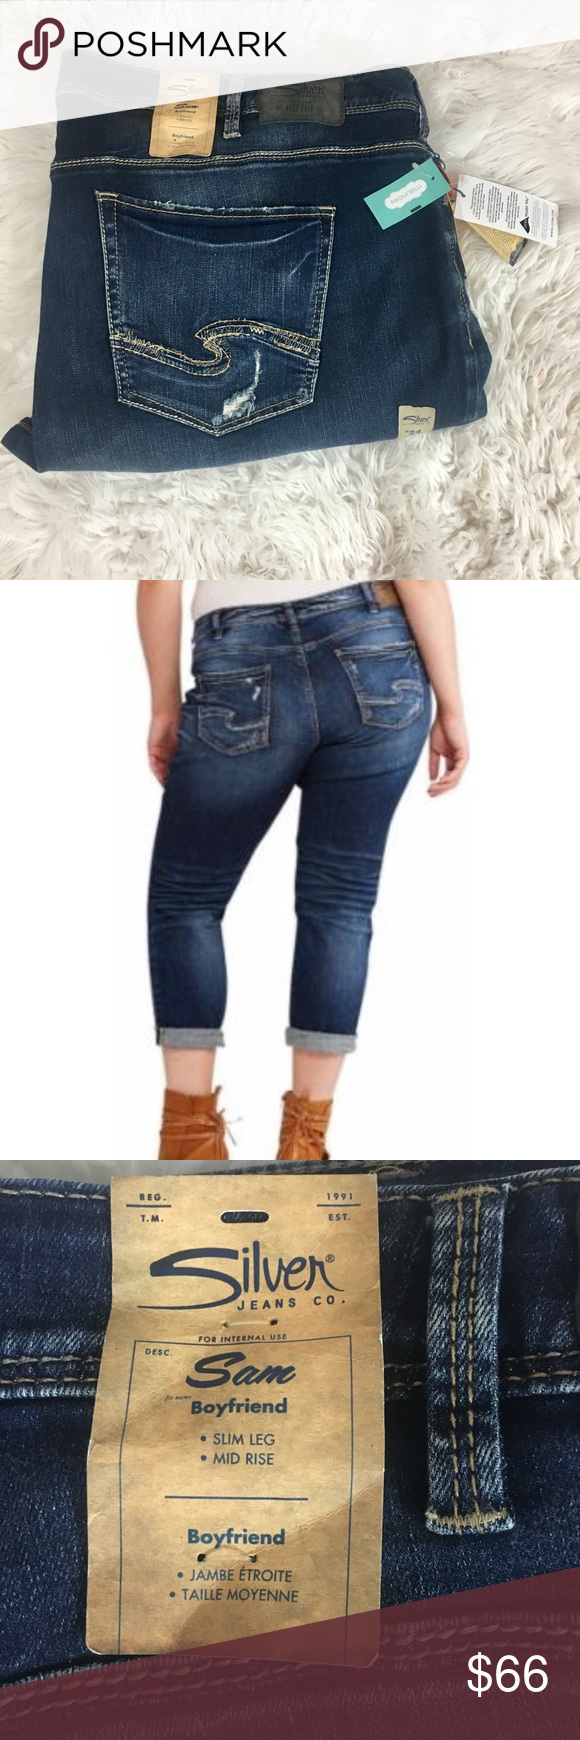 d29c642b0ab New silver jeans plus size 24 Brand new with tags Silver Jeans plus size 24.